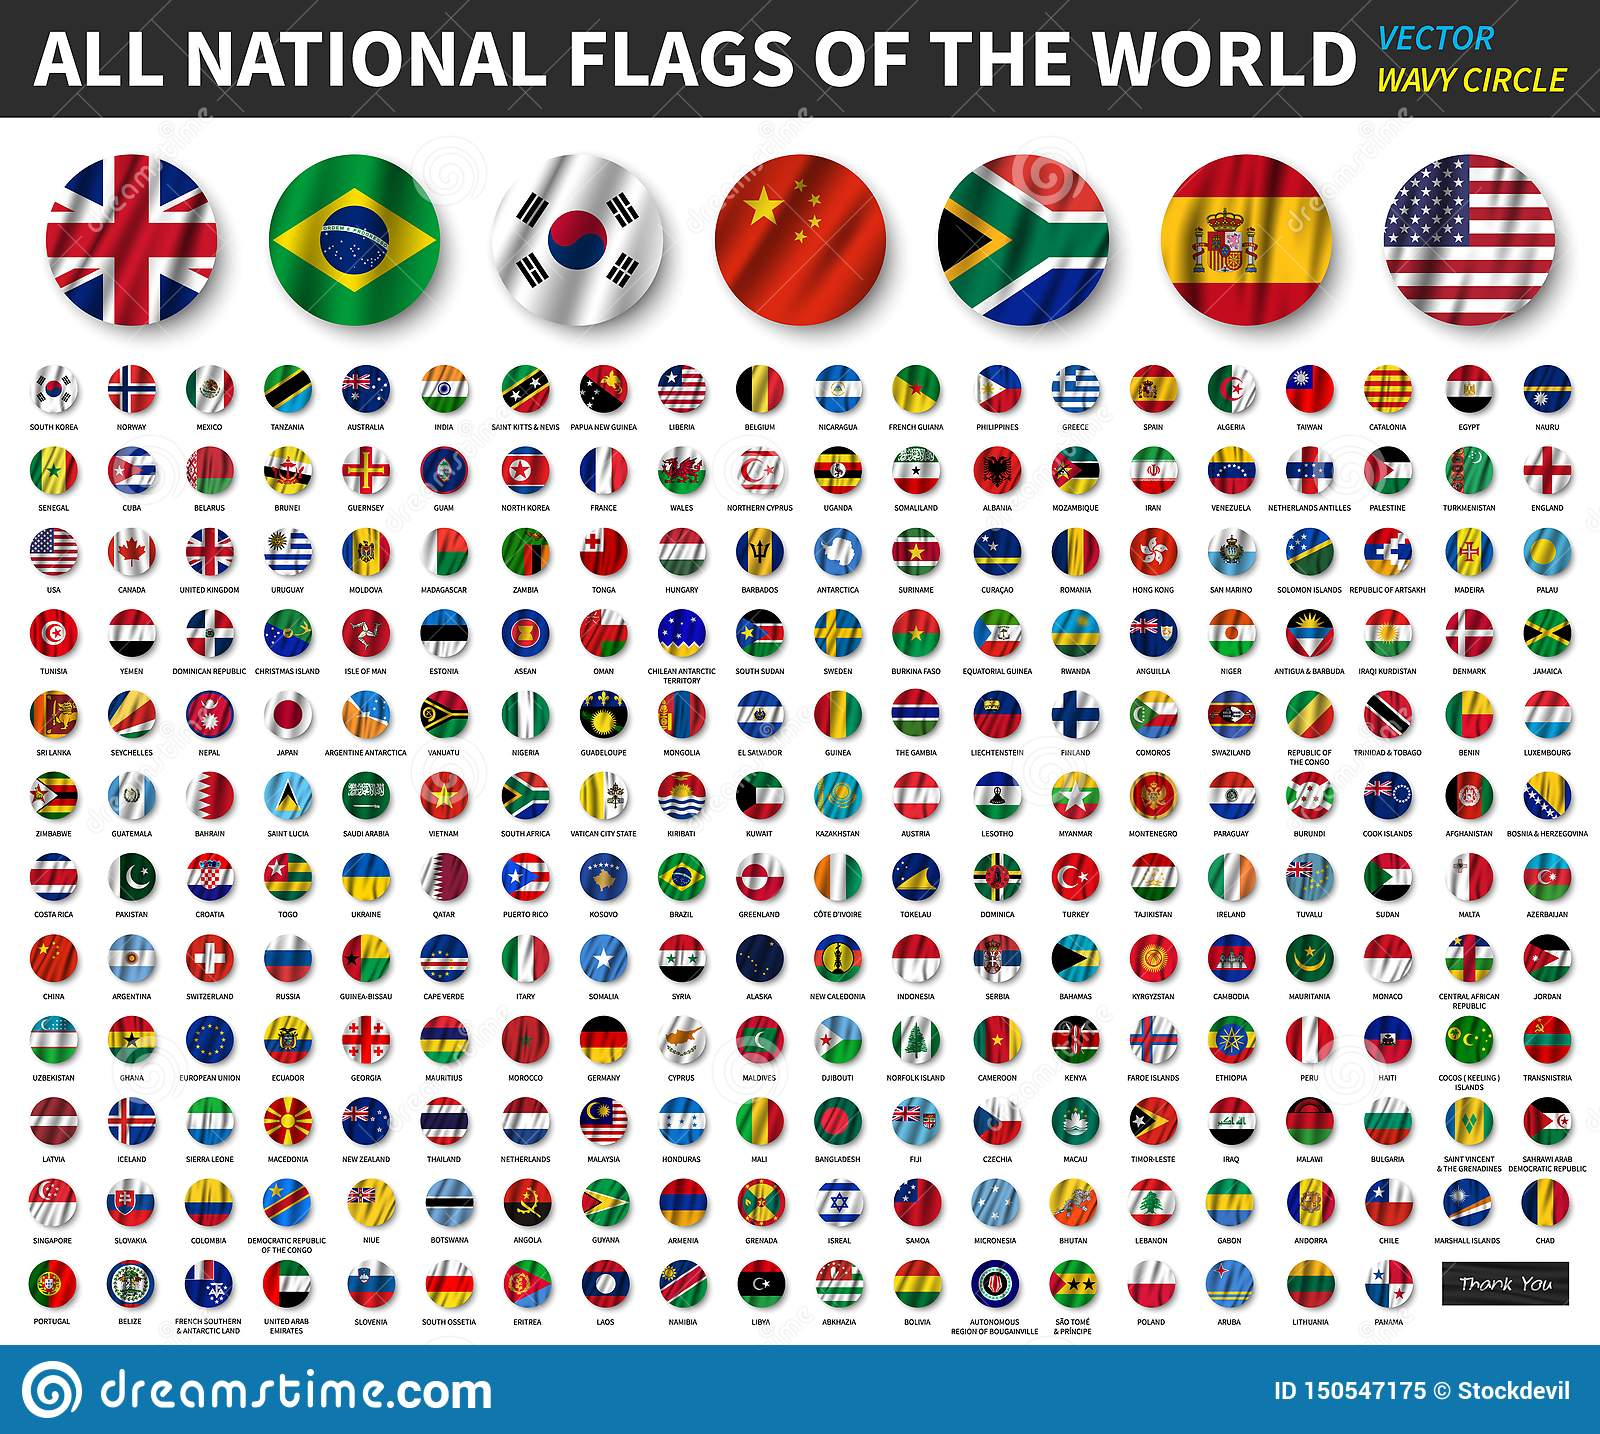 All national flags of the world . Waving circle flag design . Vector